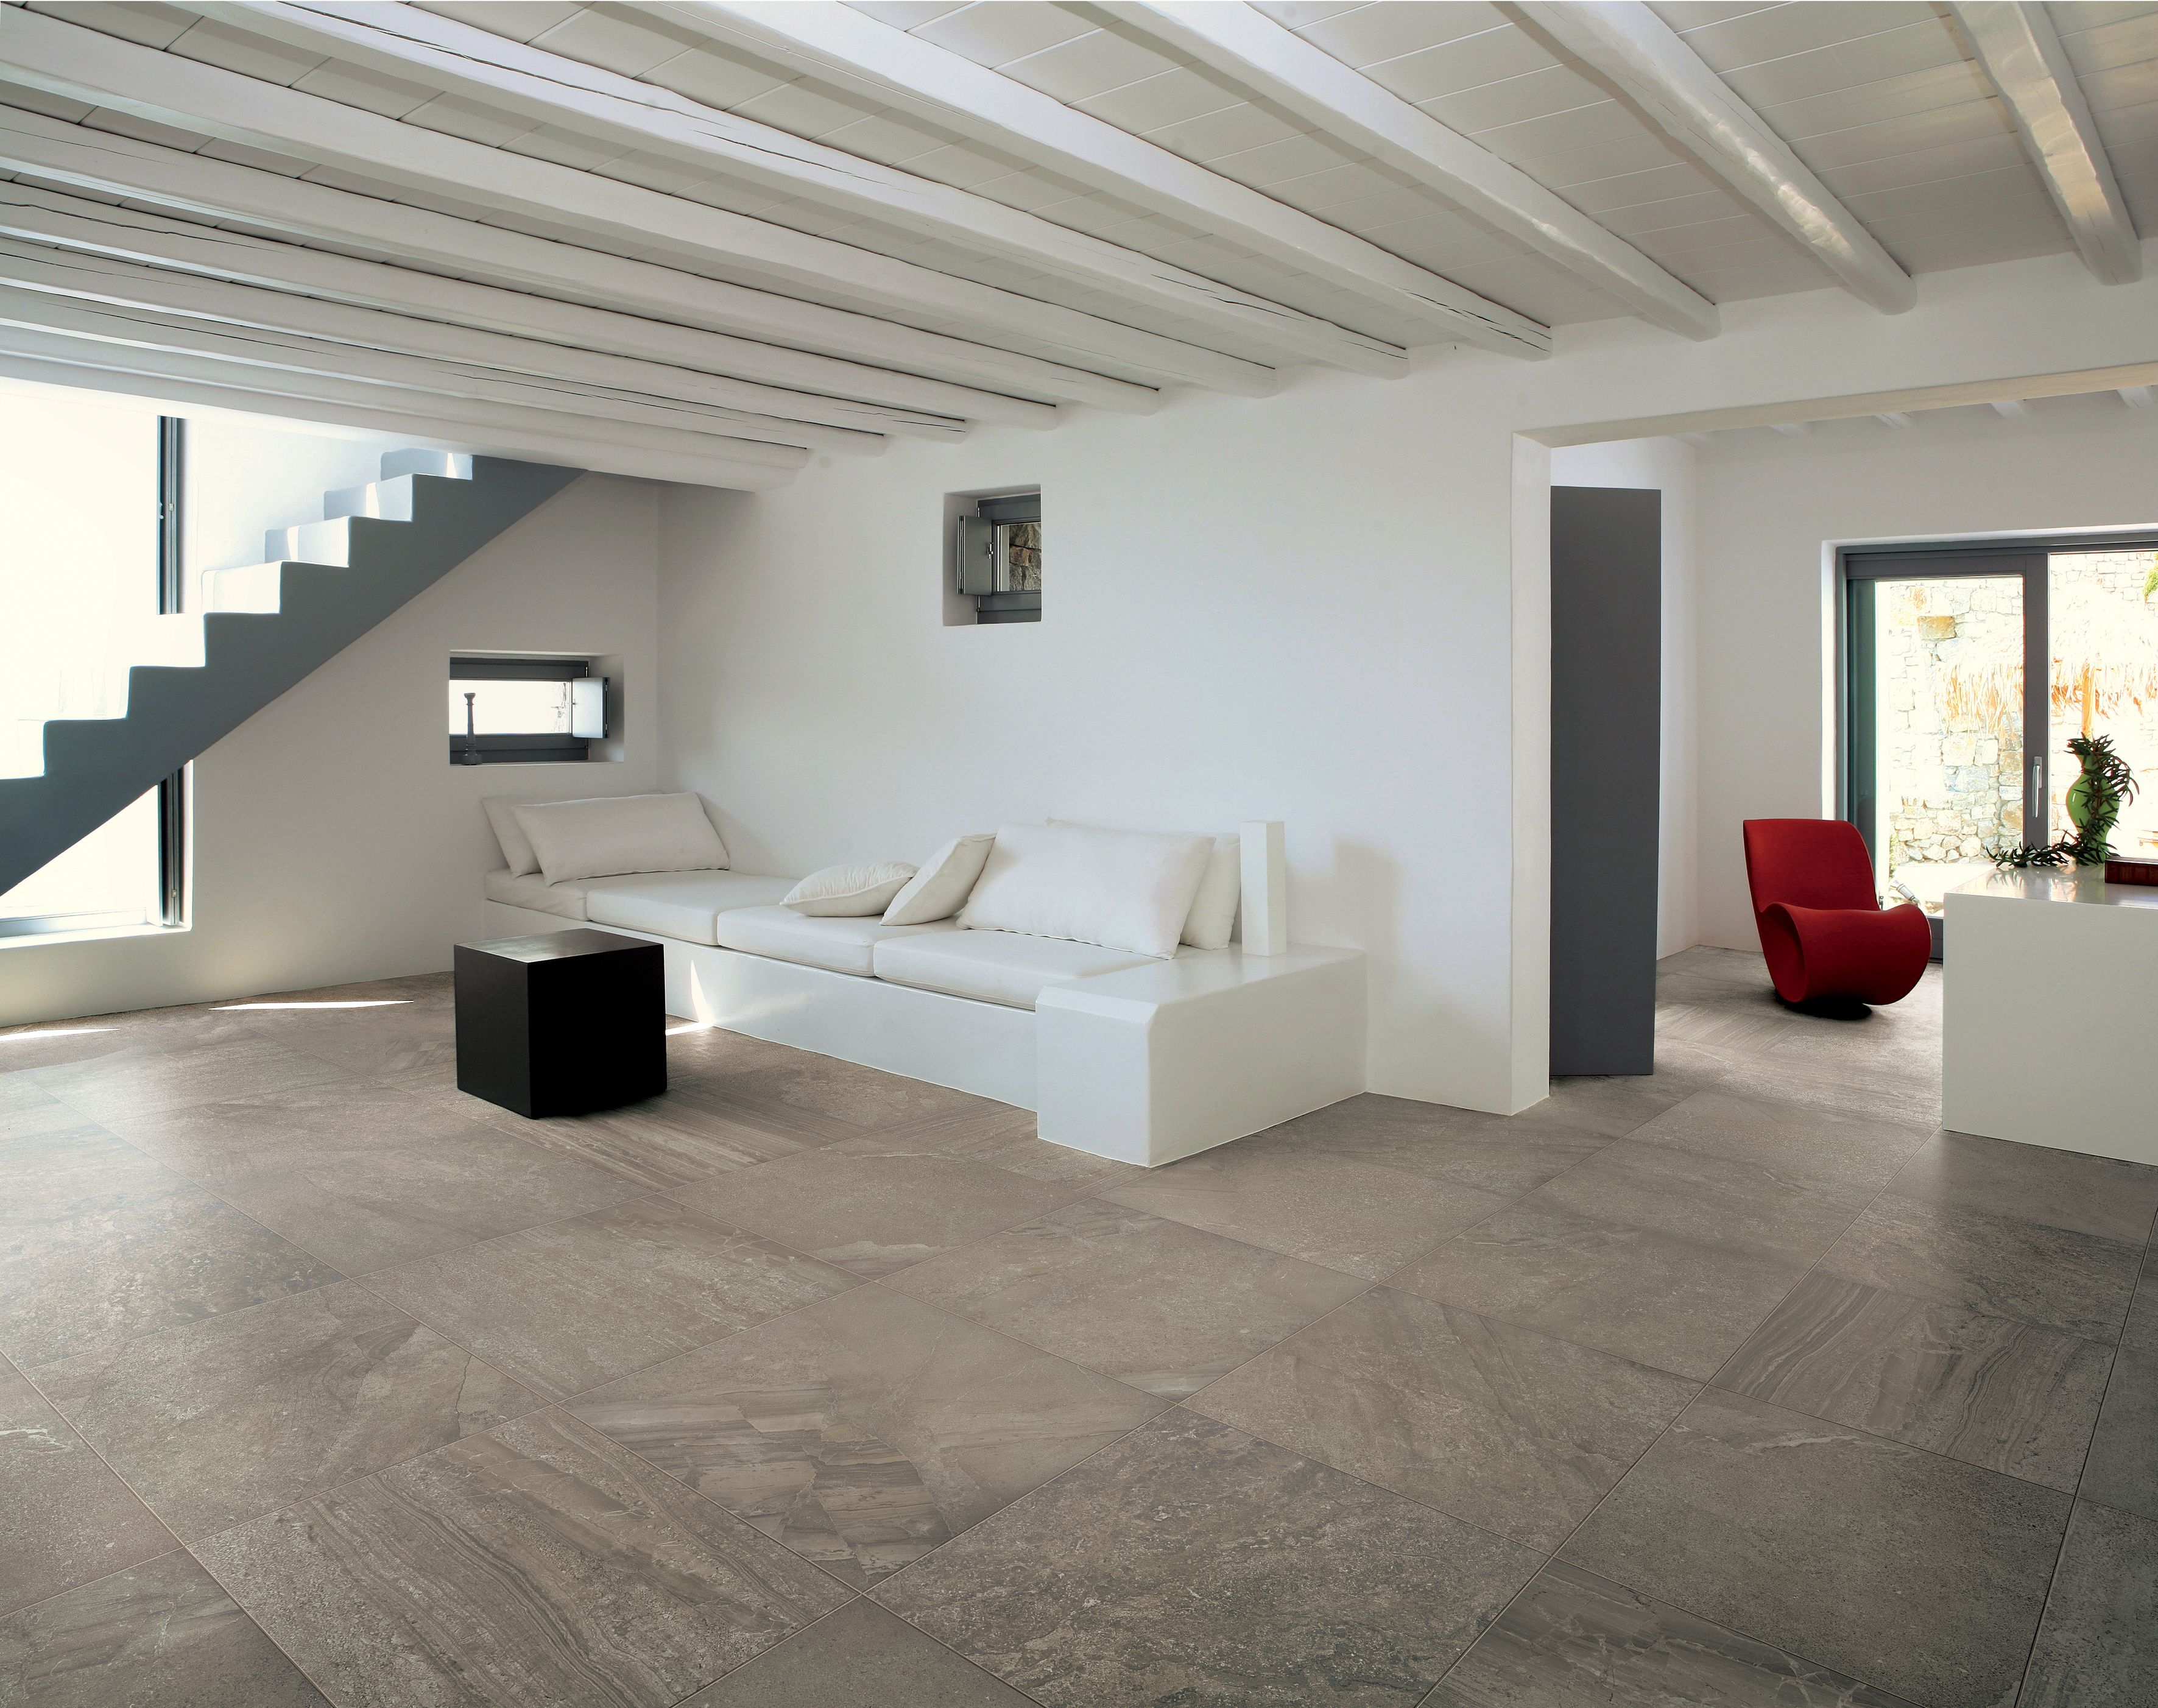 Selection Mud  Ceramiche Refin Spa  Porcelain Tile That Looks Like  Marble